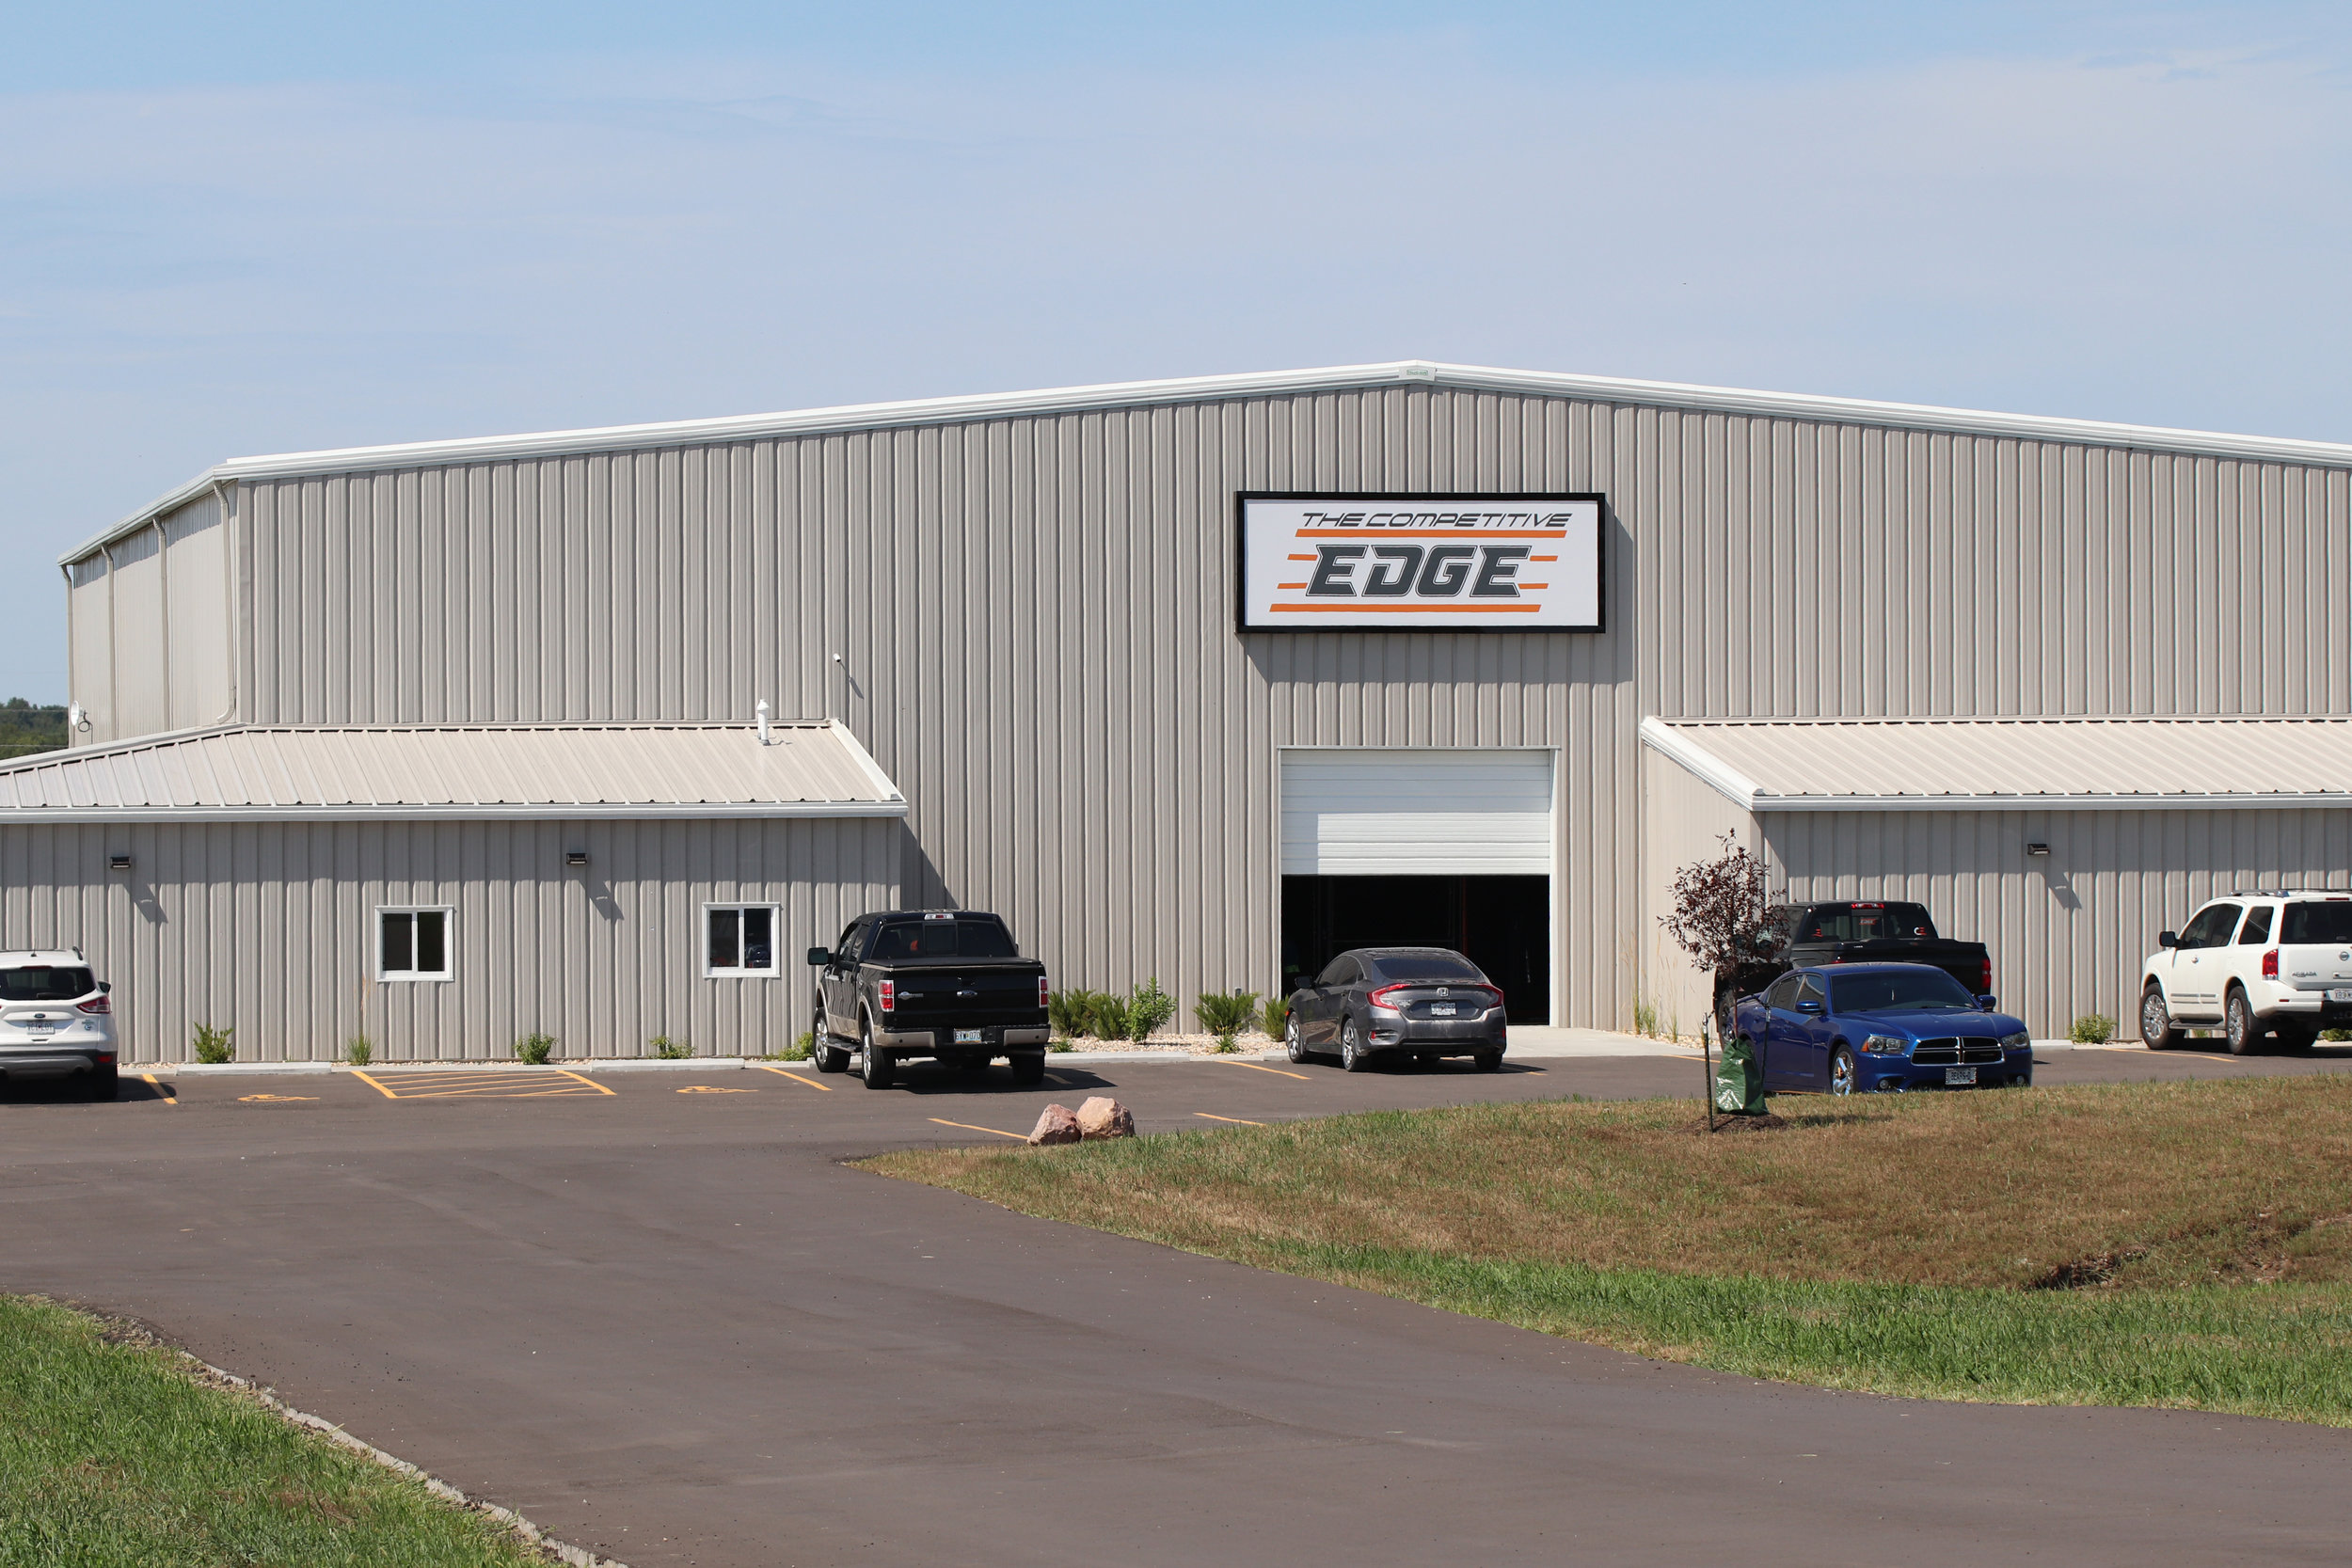 CODY THORN/Citizen photo  Competitive Edge opened up at 10850 Highway 92, east of Platte City. The indoor facility provides 15,000 square feet to host a number of games and training activities.